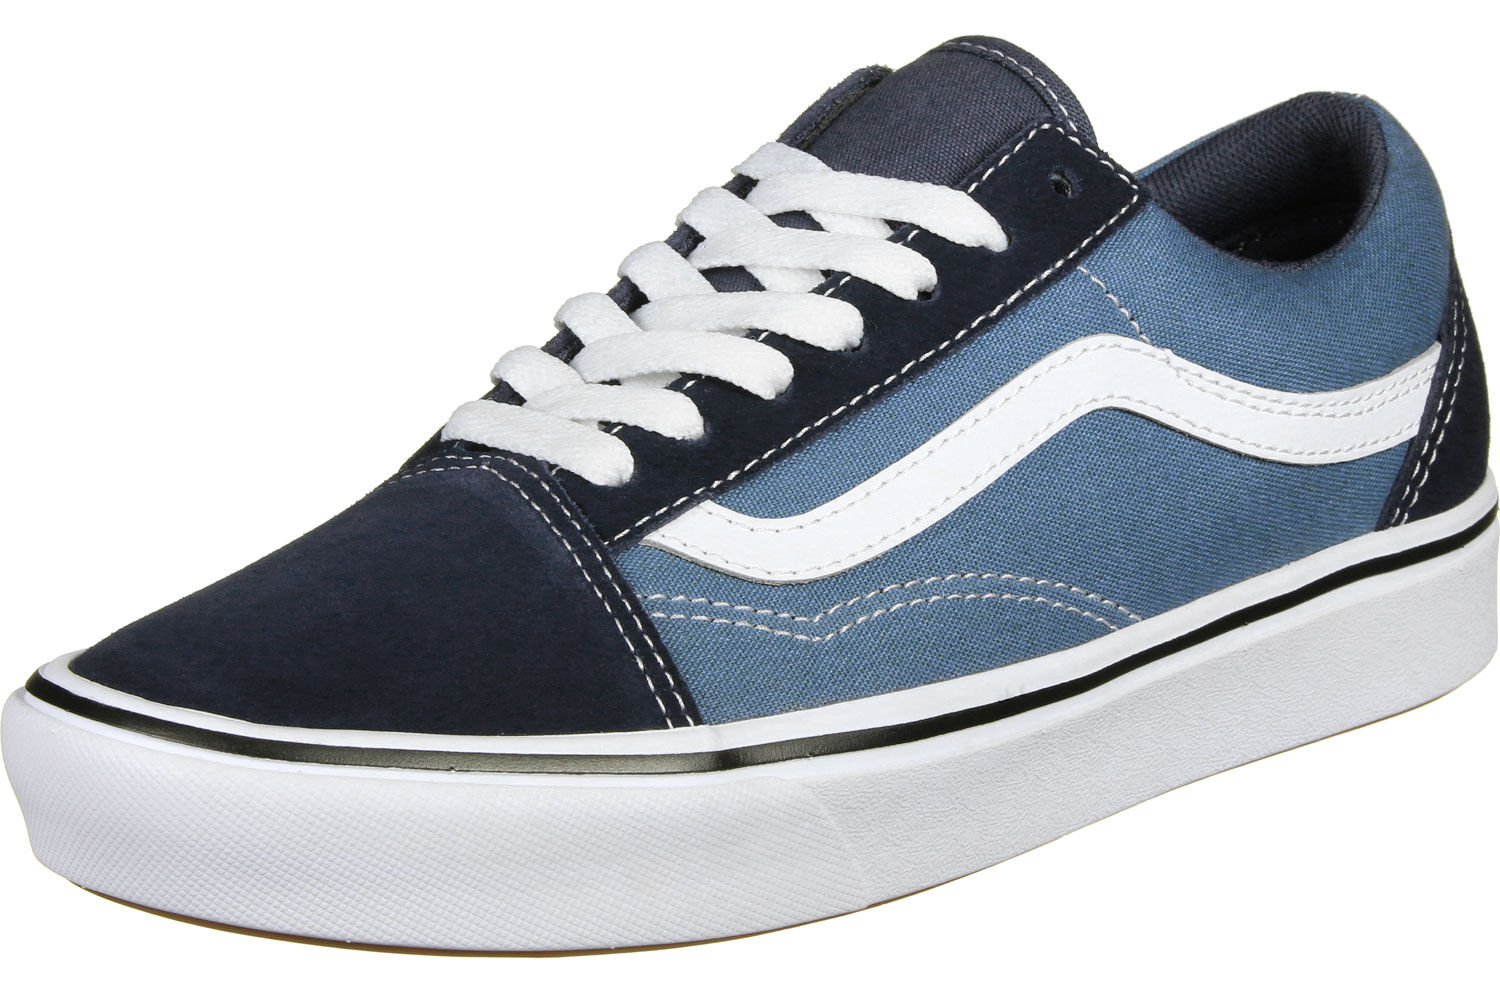 ComfyCush Old Skool - Baskets low - Hommes chez Stylefile